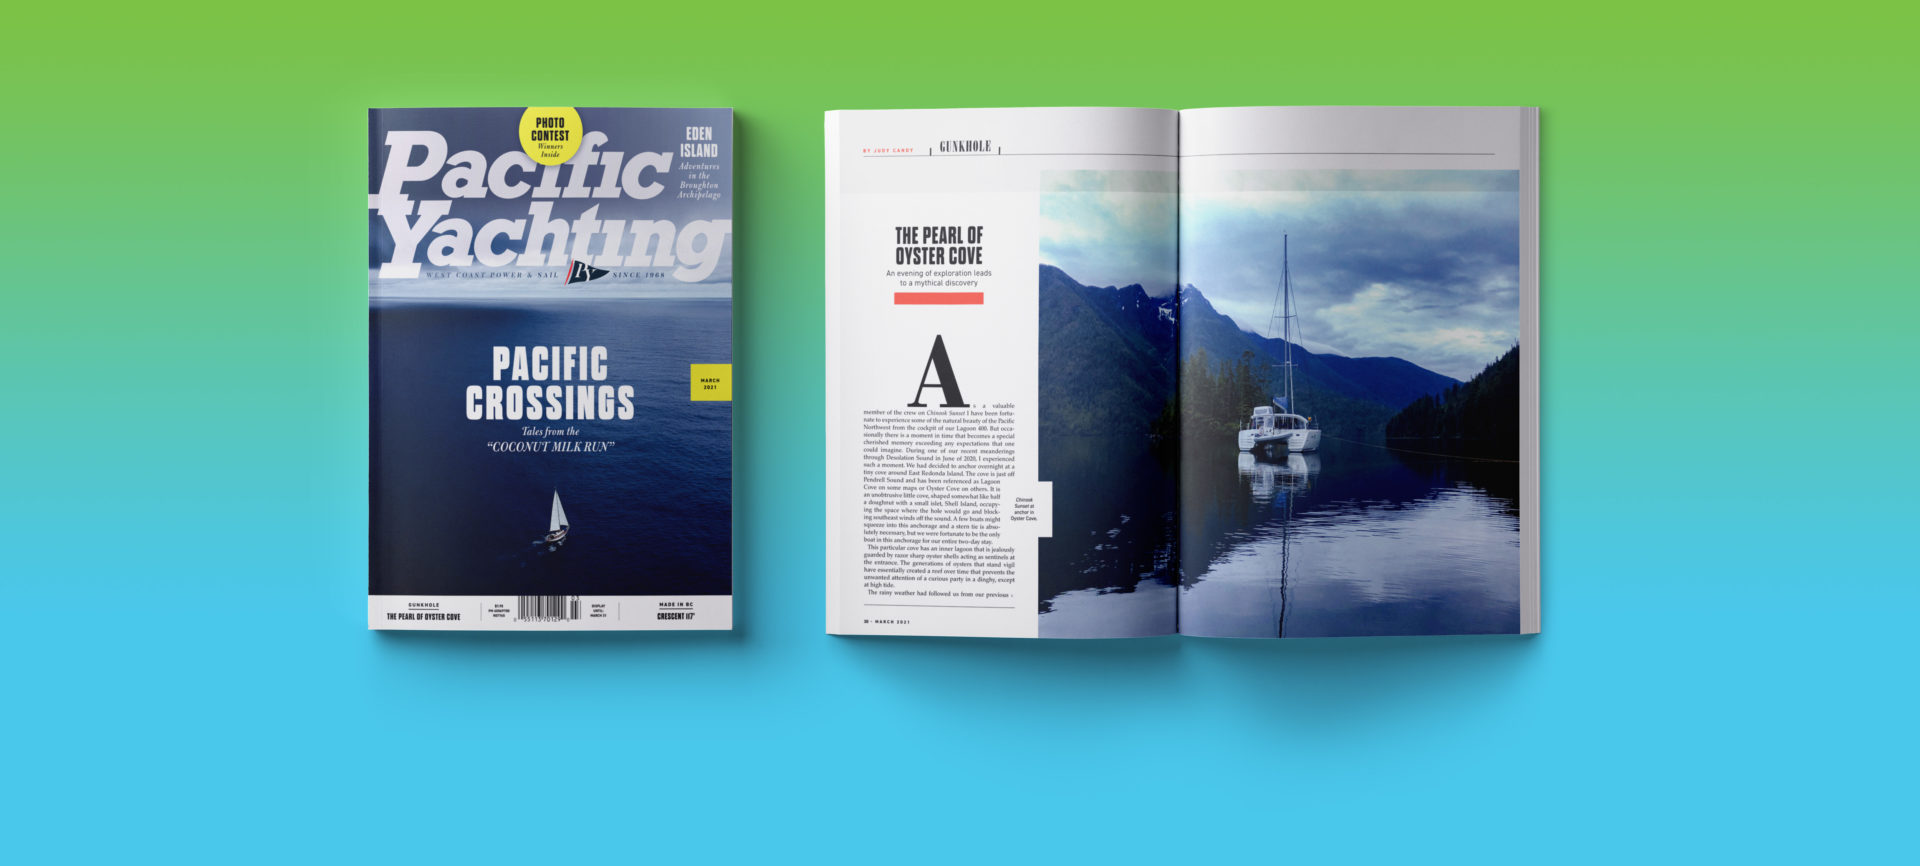 Pacific Yachting March 2021 issue